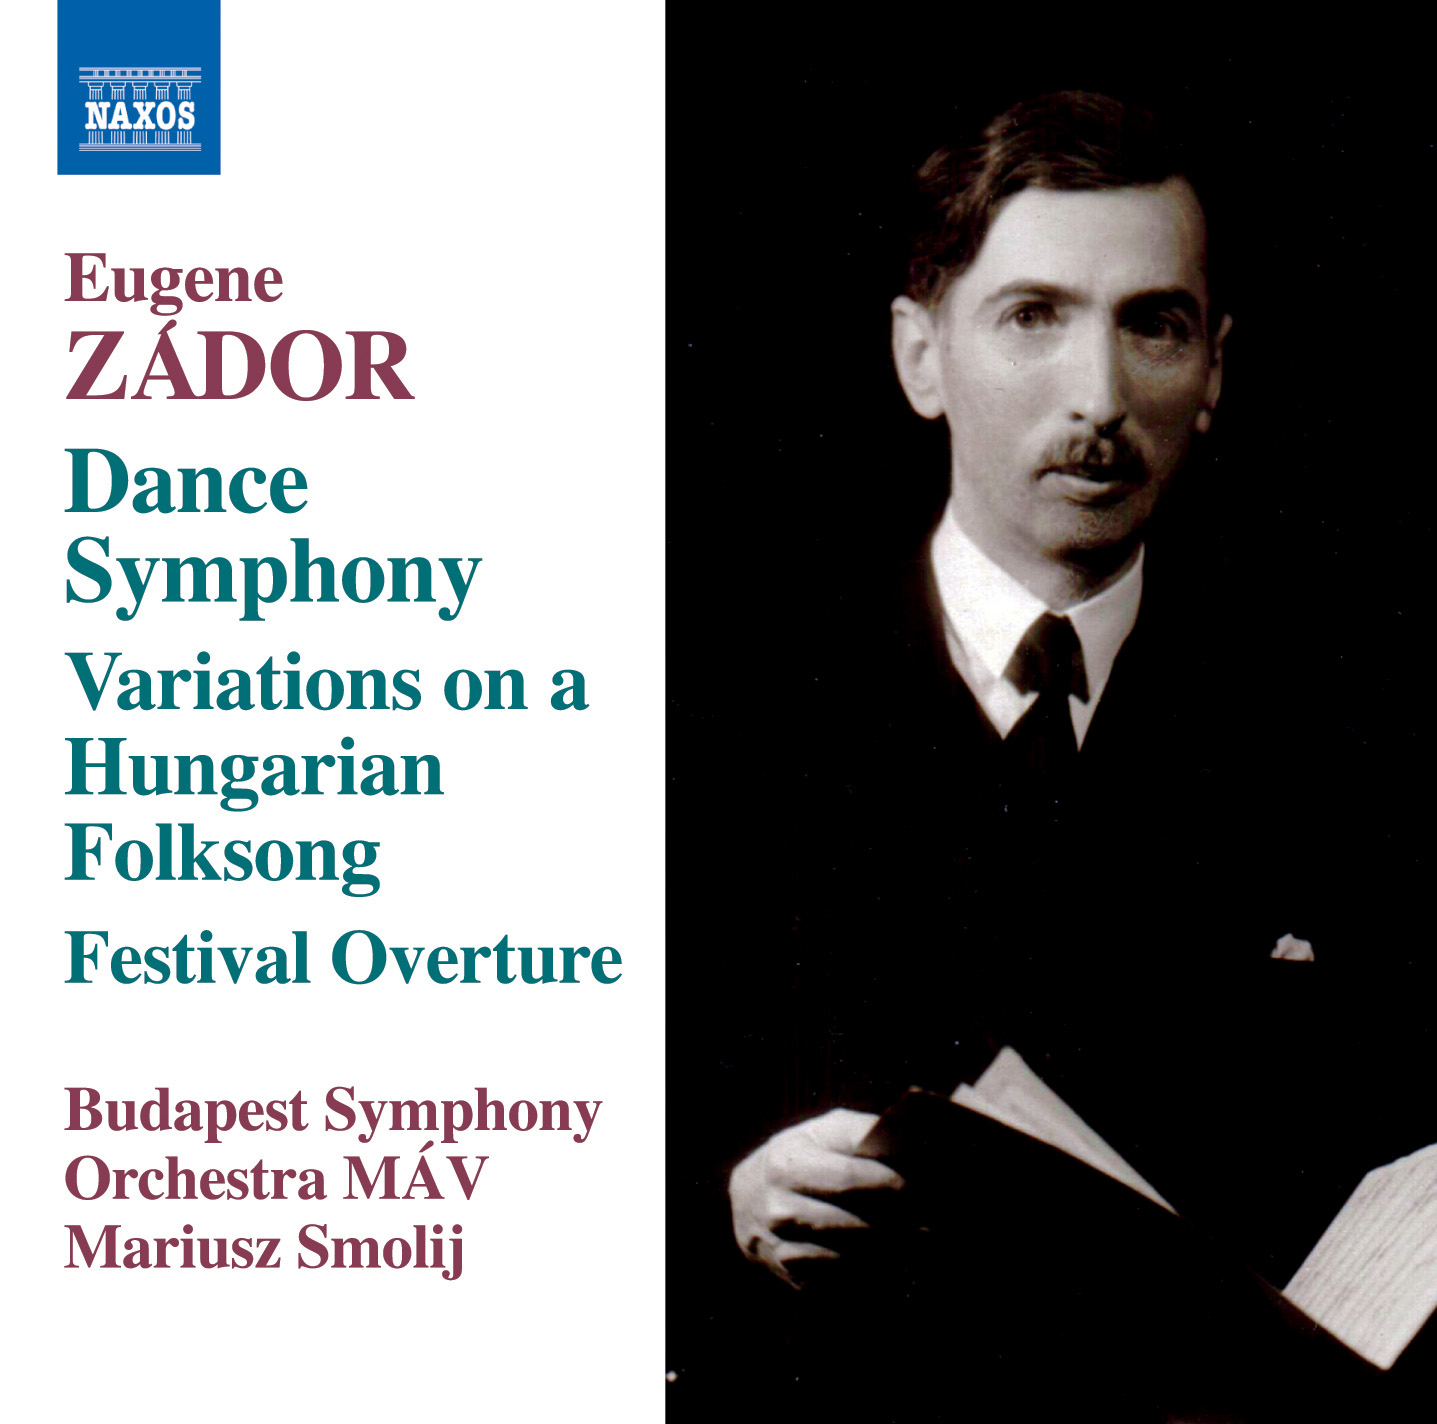 "Zádor: Symphony No. 3 ""Dance"", Variations on a Hungarian Folksong & Festival Overture"